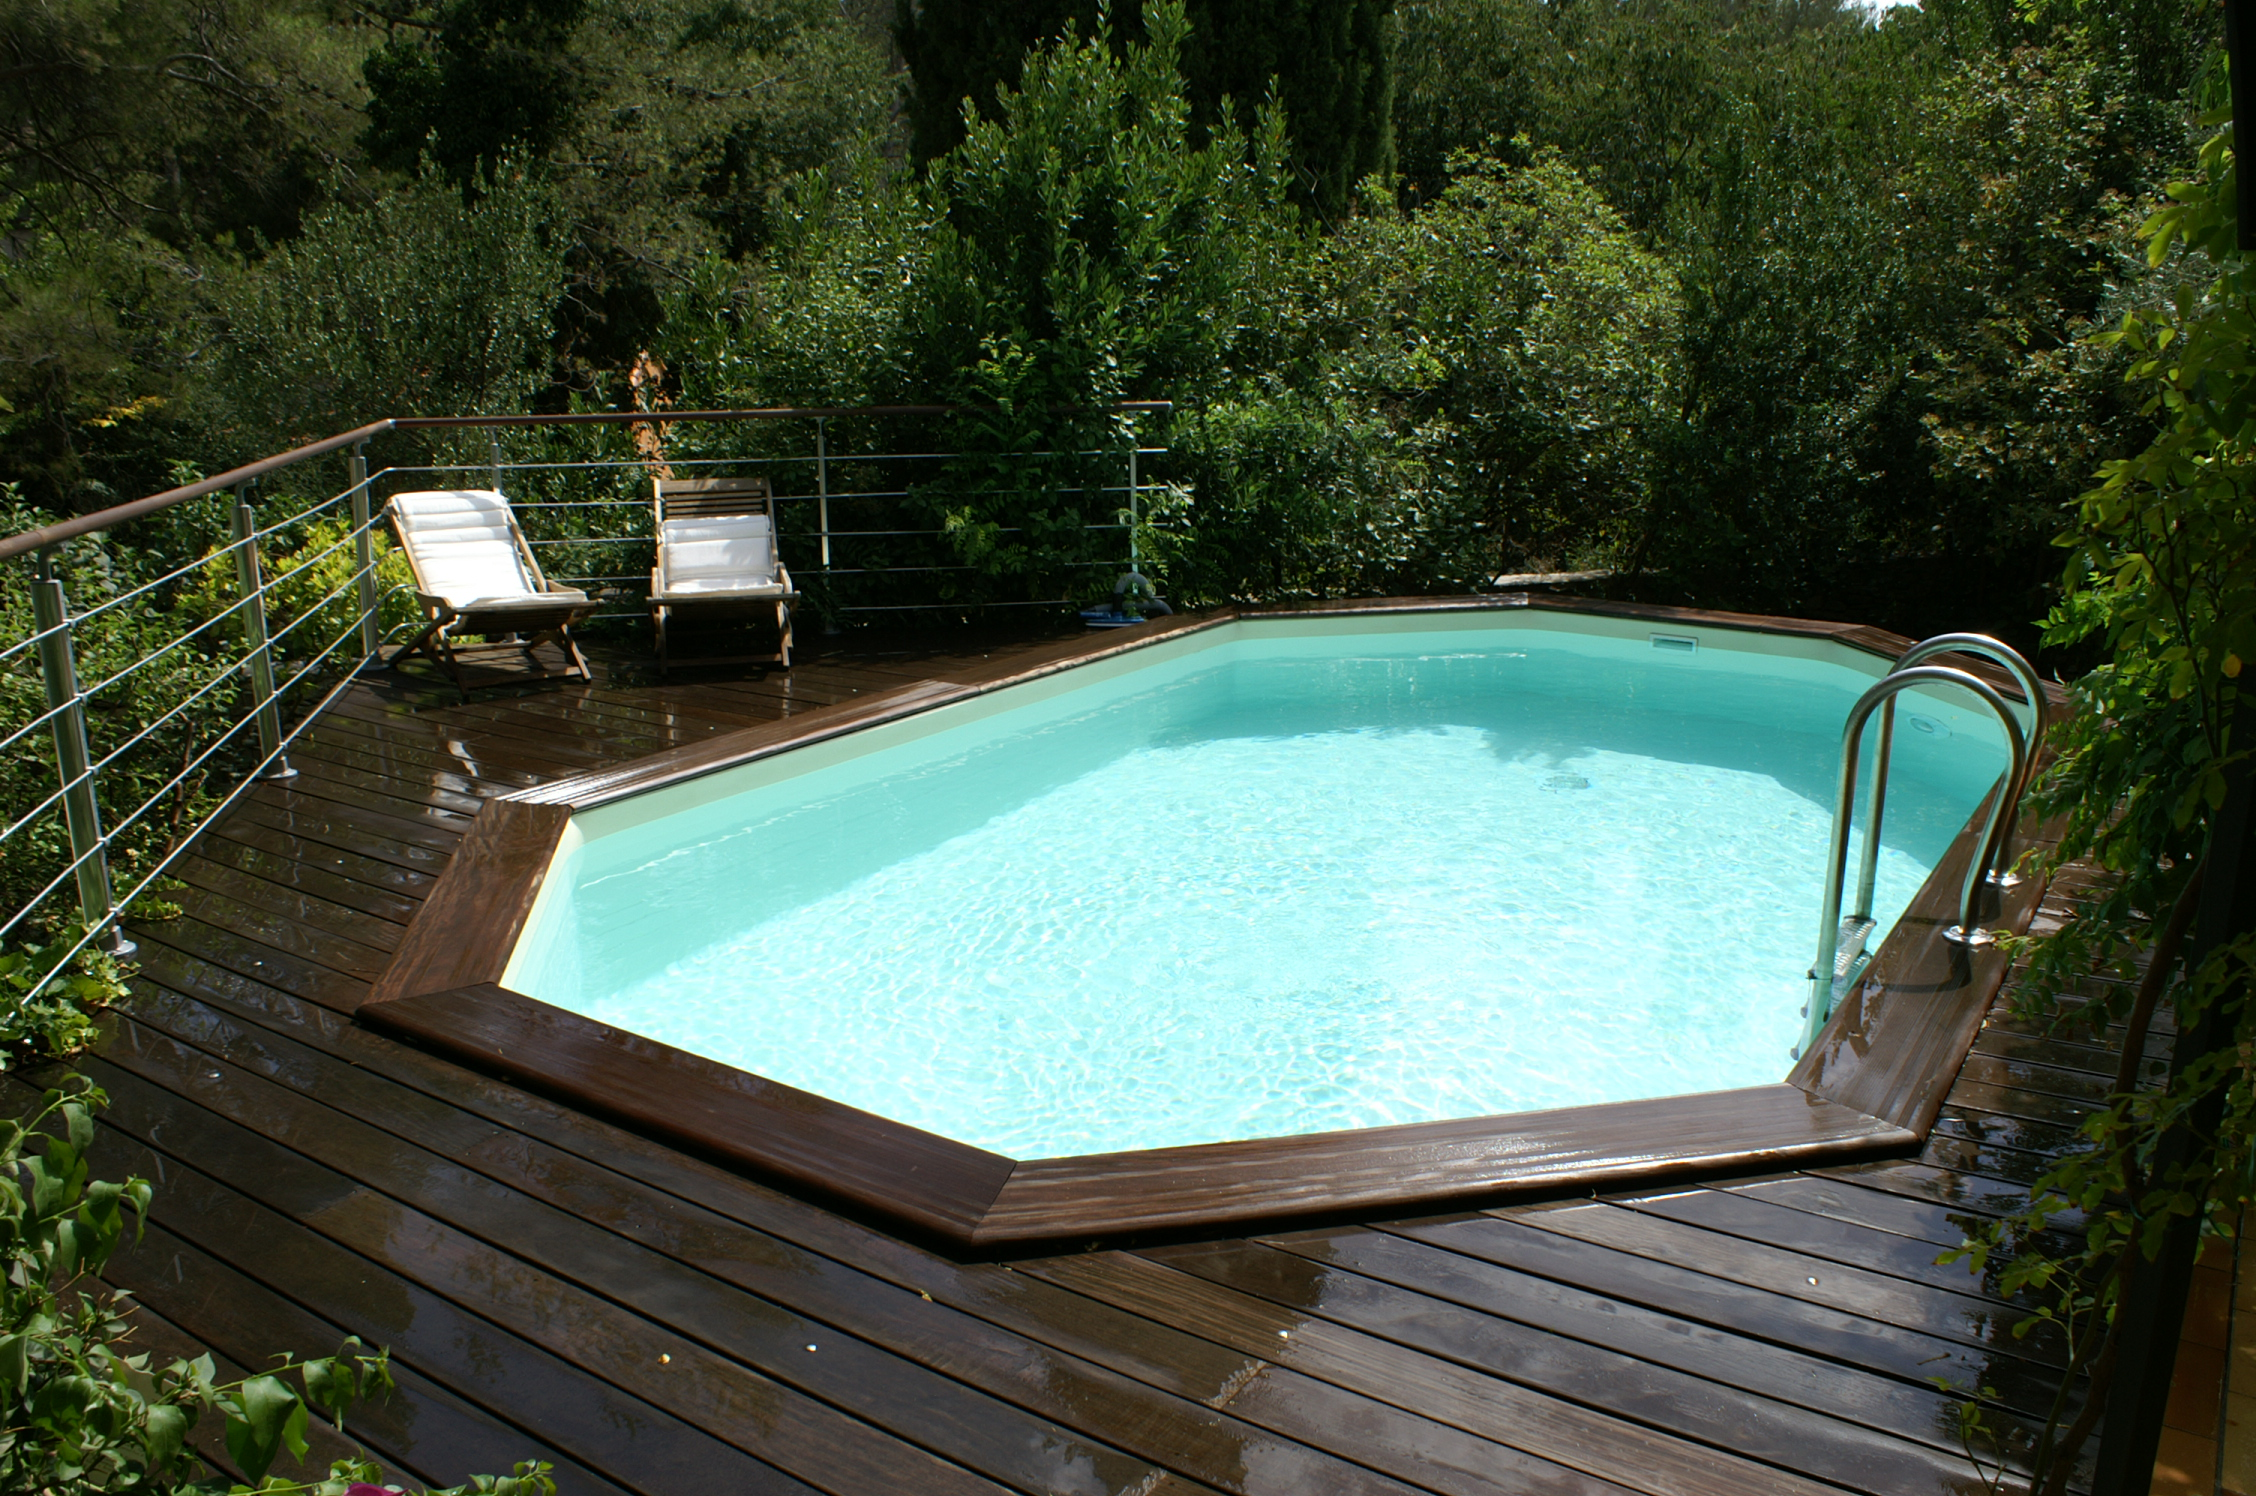 Construction piscines nimes gepad piscines et spa 30000 for Piscine hors sol plastique